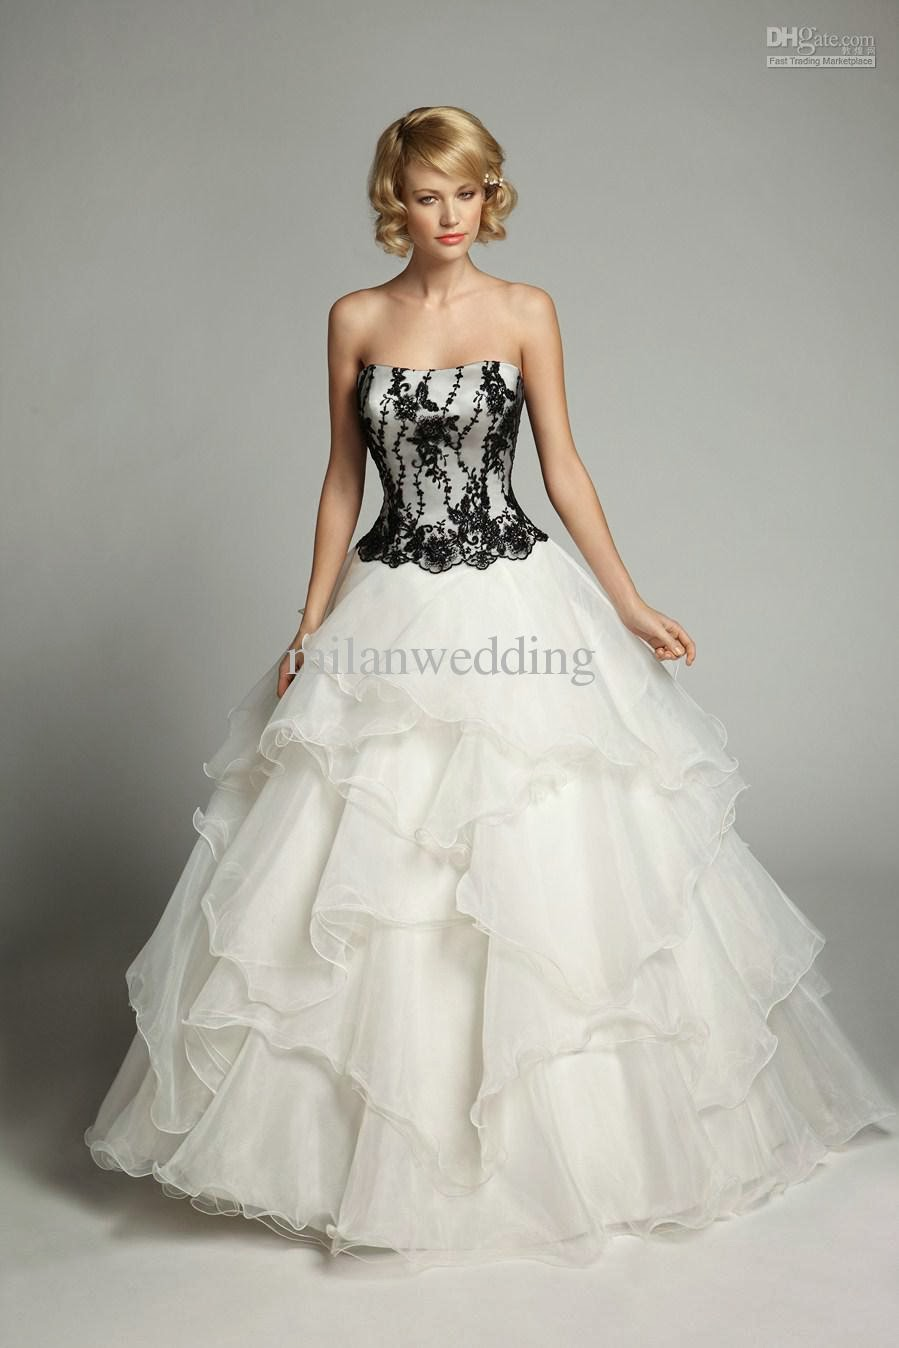 Wedding dress color meanings poem wedding dresses asian for White wedding dress meaning